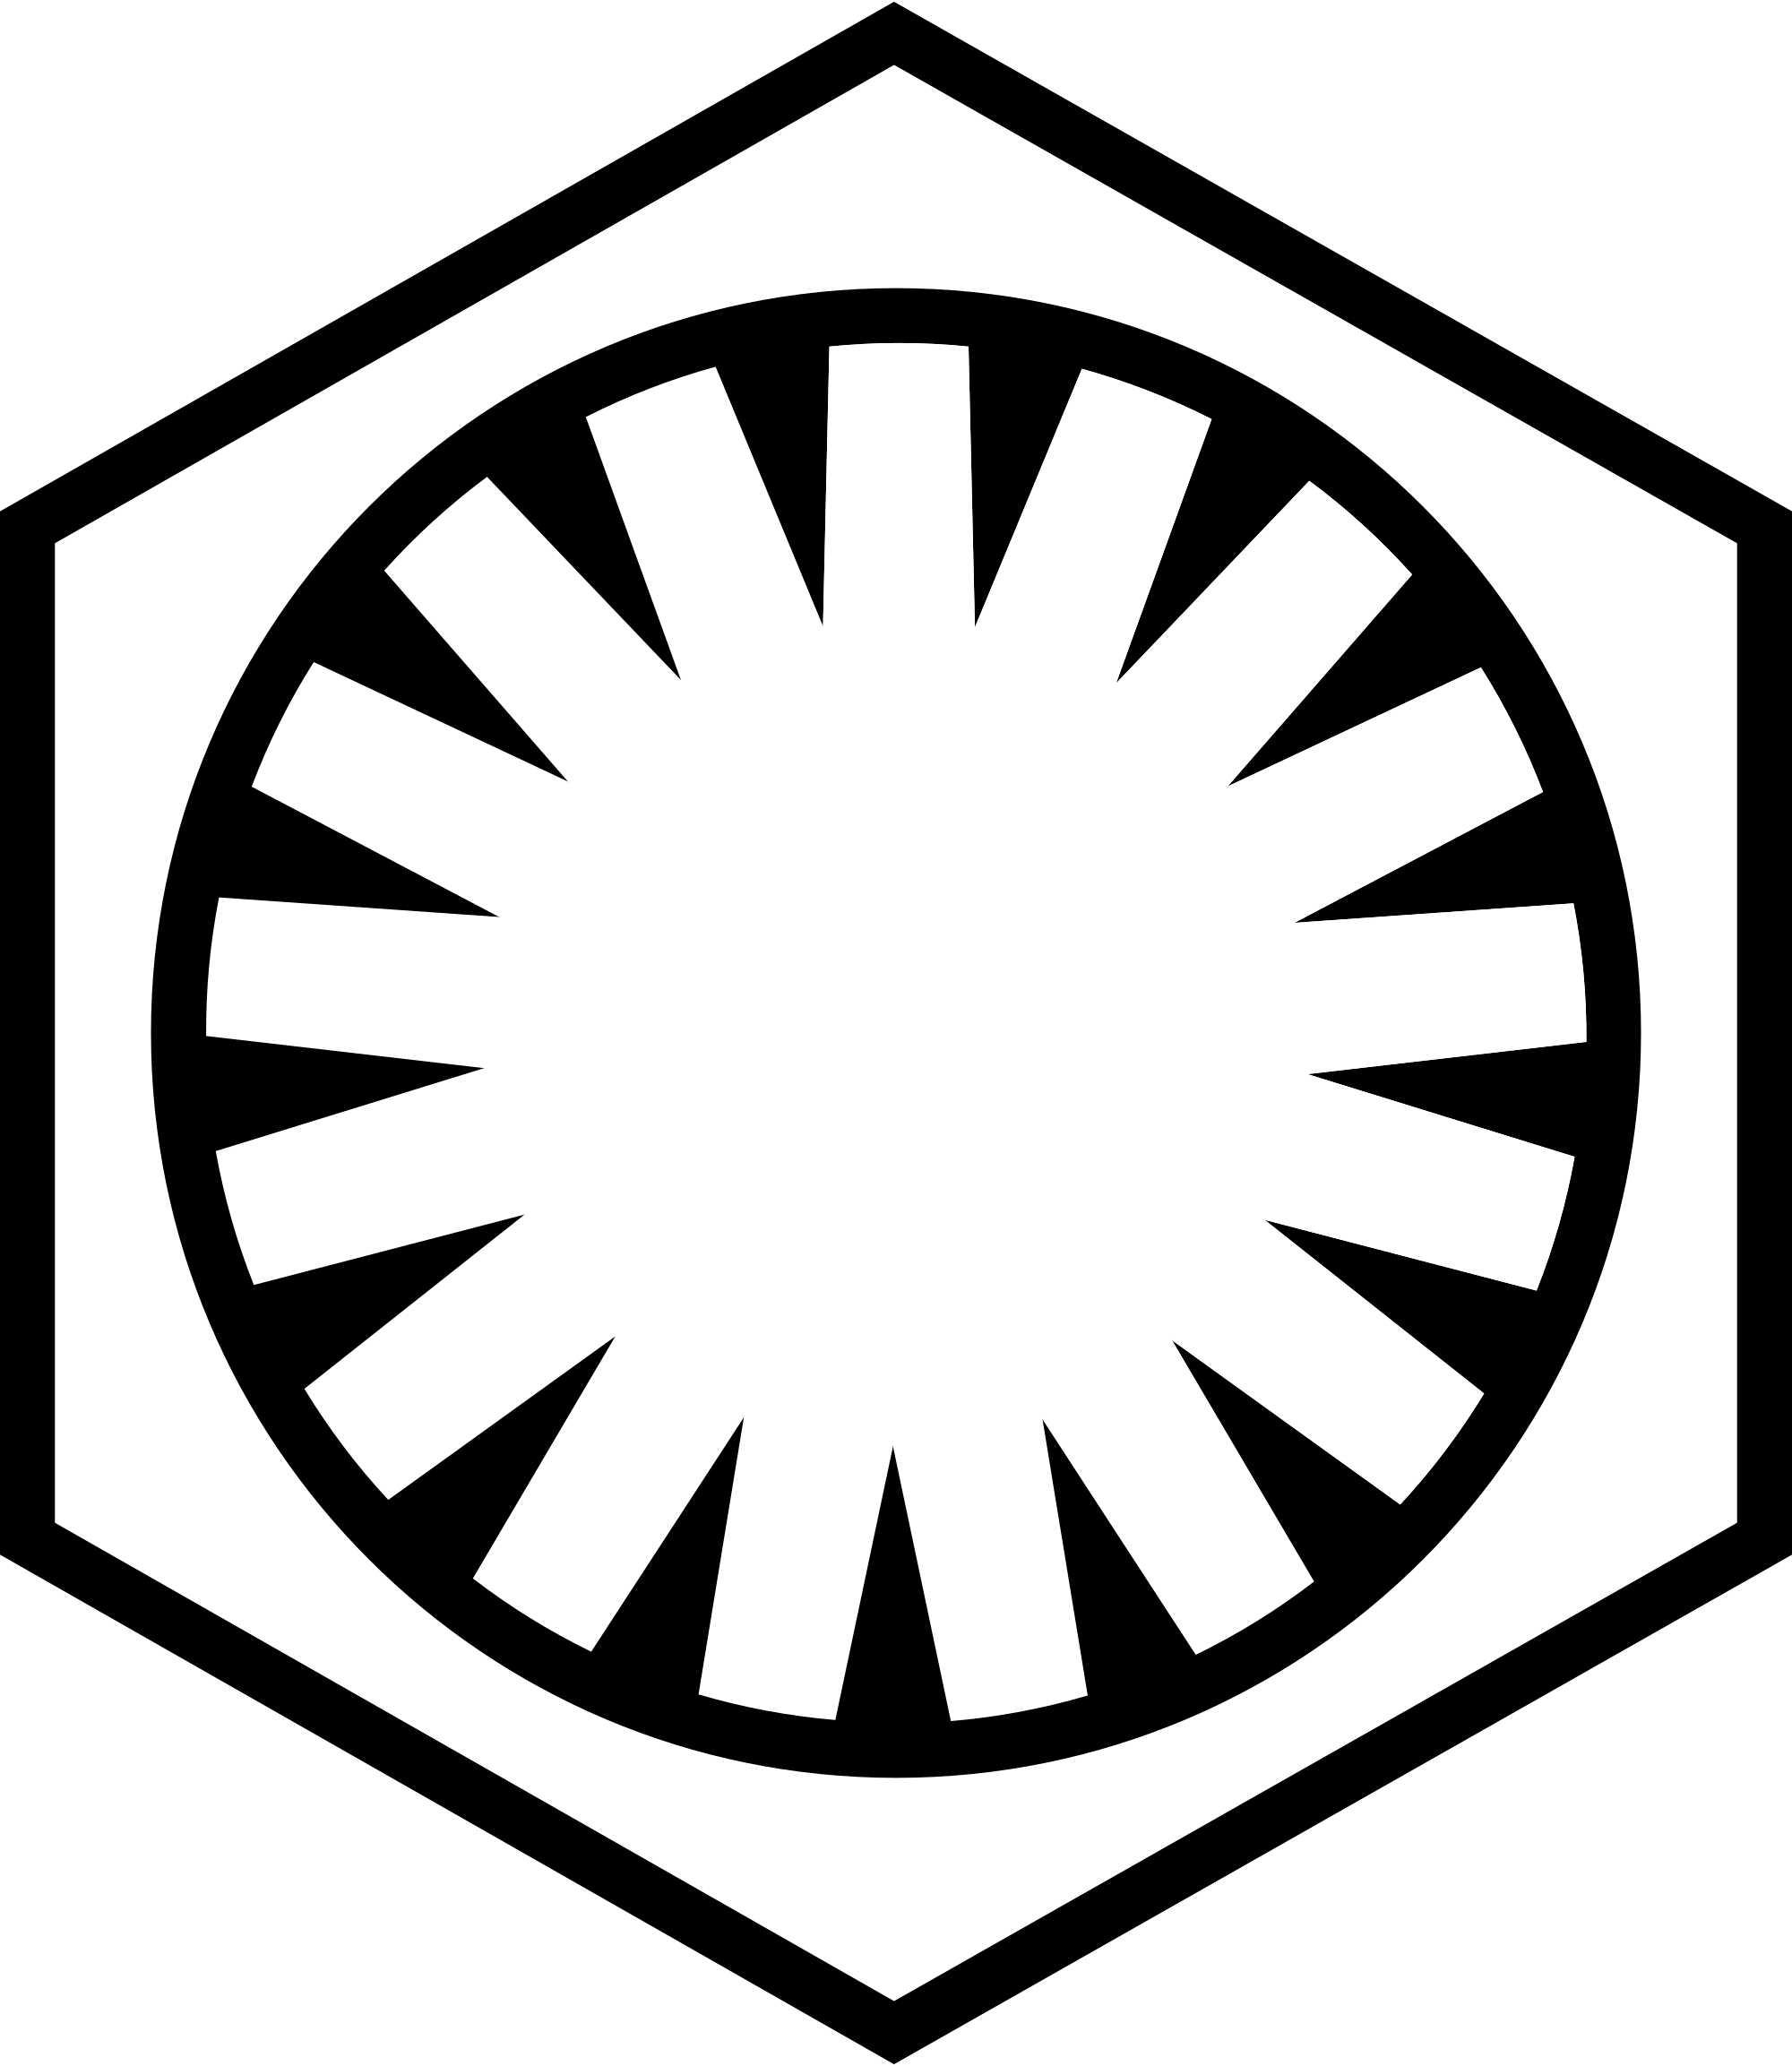 Stormtrooper svg first order. Steam workshop orion star